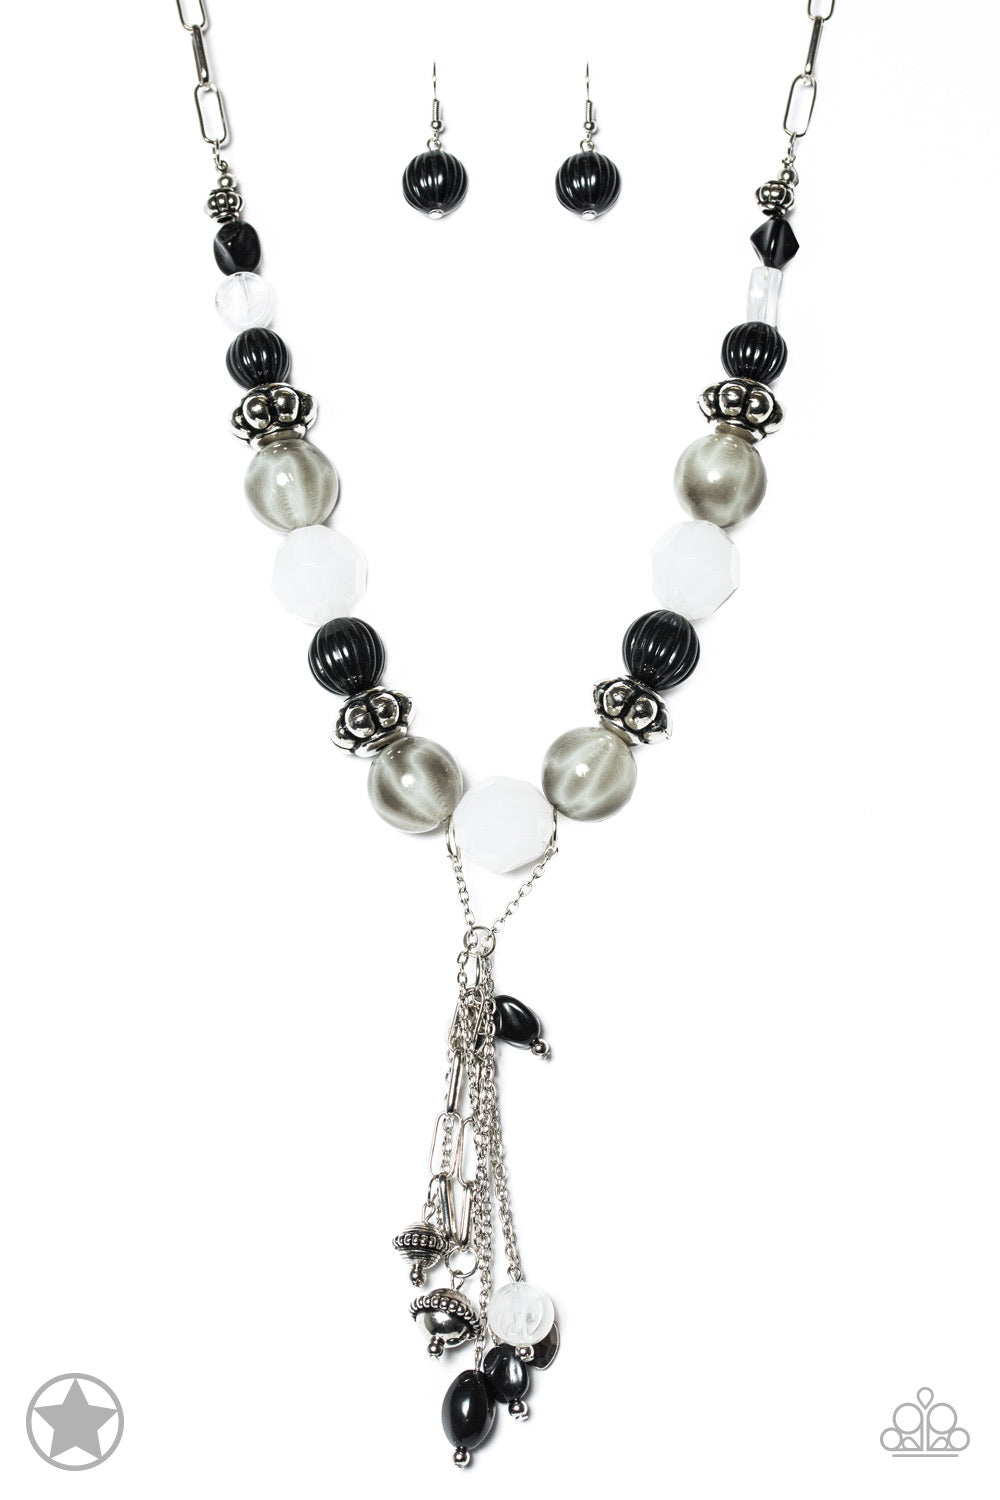 Break A Leg! - Black/White Necklace - Paparazzi Accessories